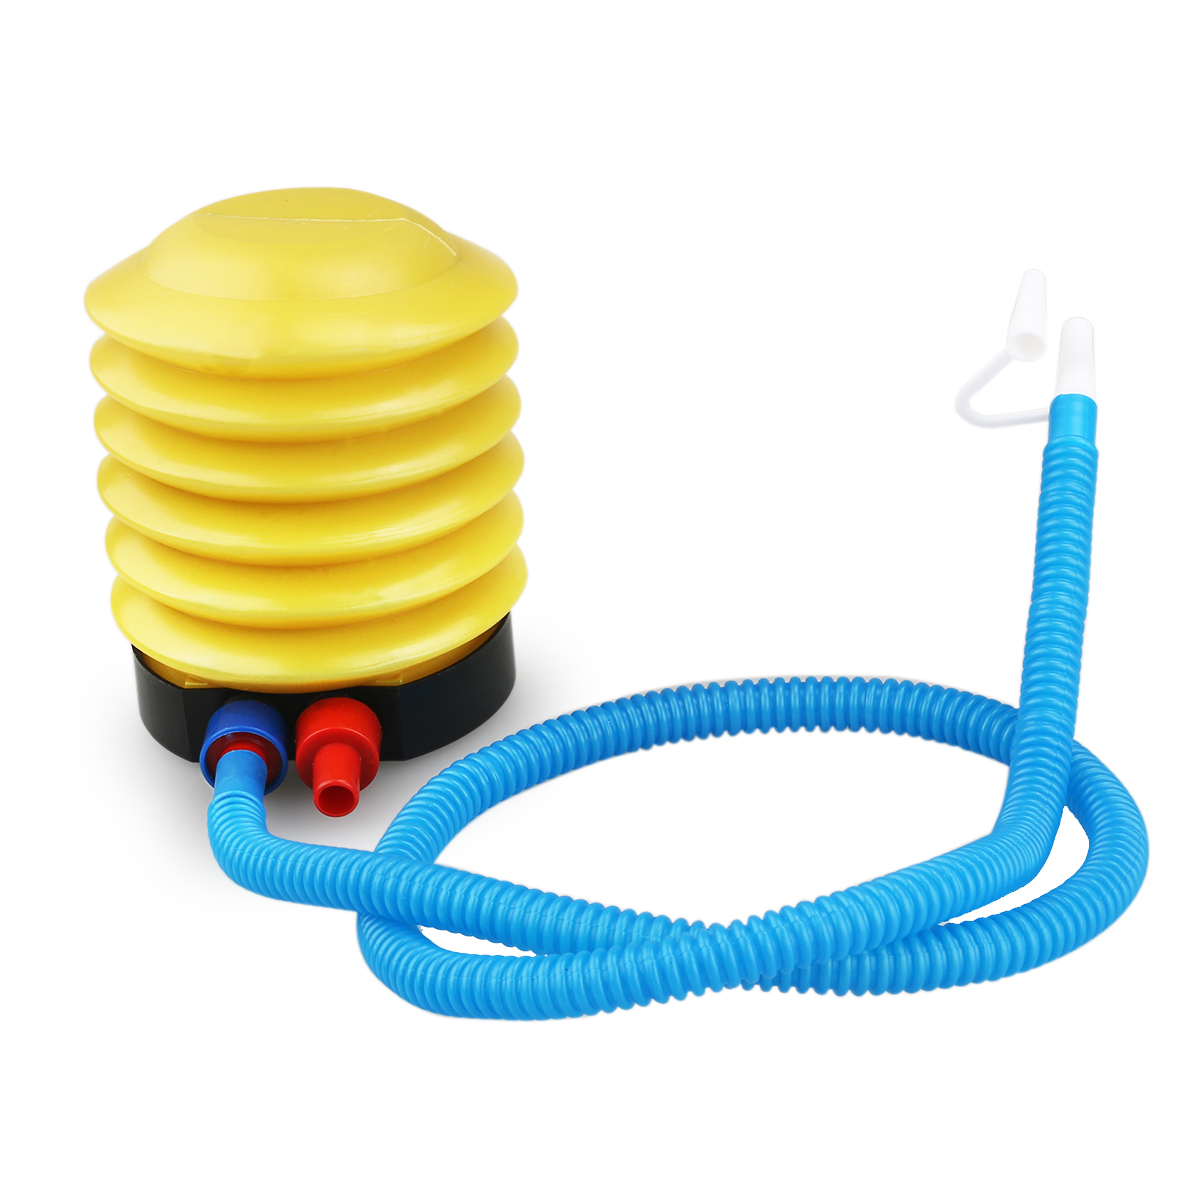 Portable Mini Inflatable Toy Balloon Foot Air Pump Inflator (Yellow+Blue) by